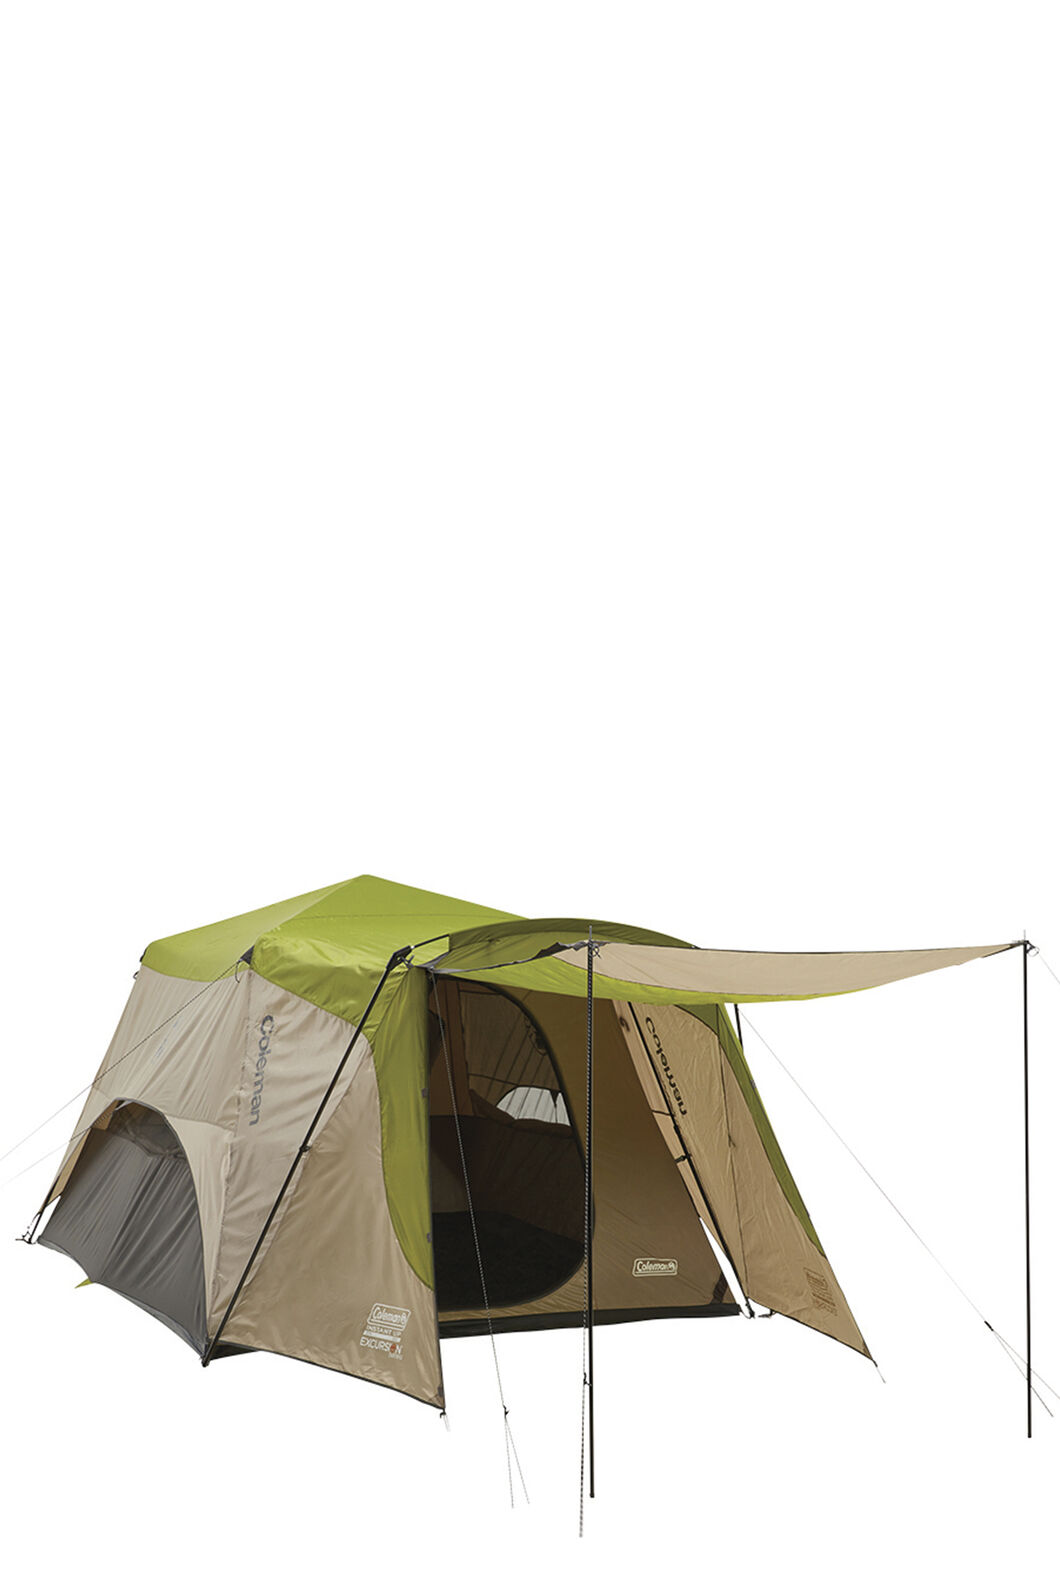 Coleman Excursion Instant Up 6 Person Touring Tent, None, hi-res